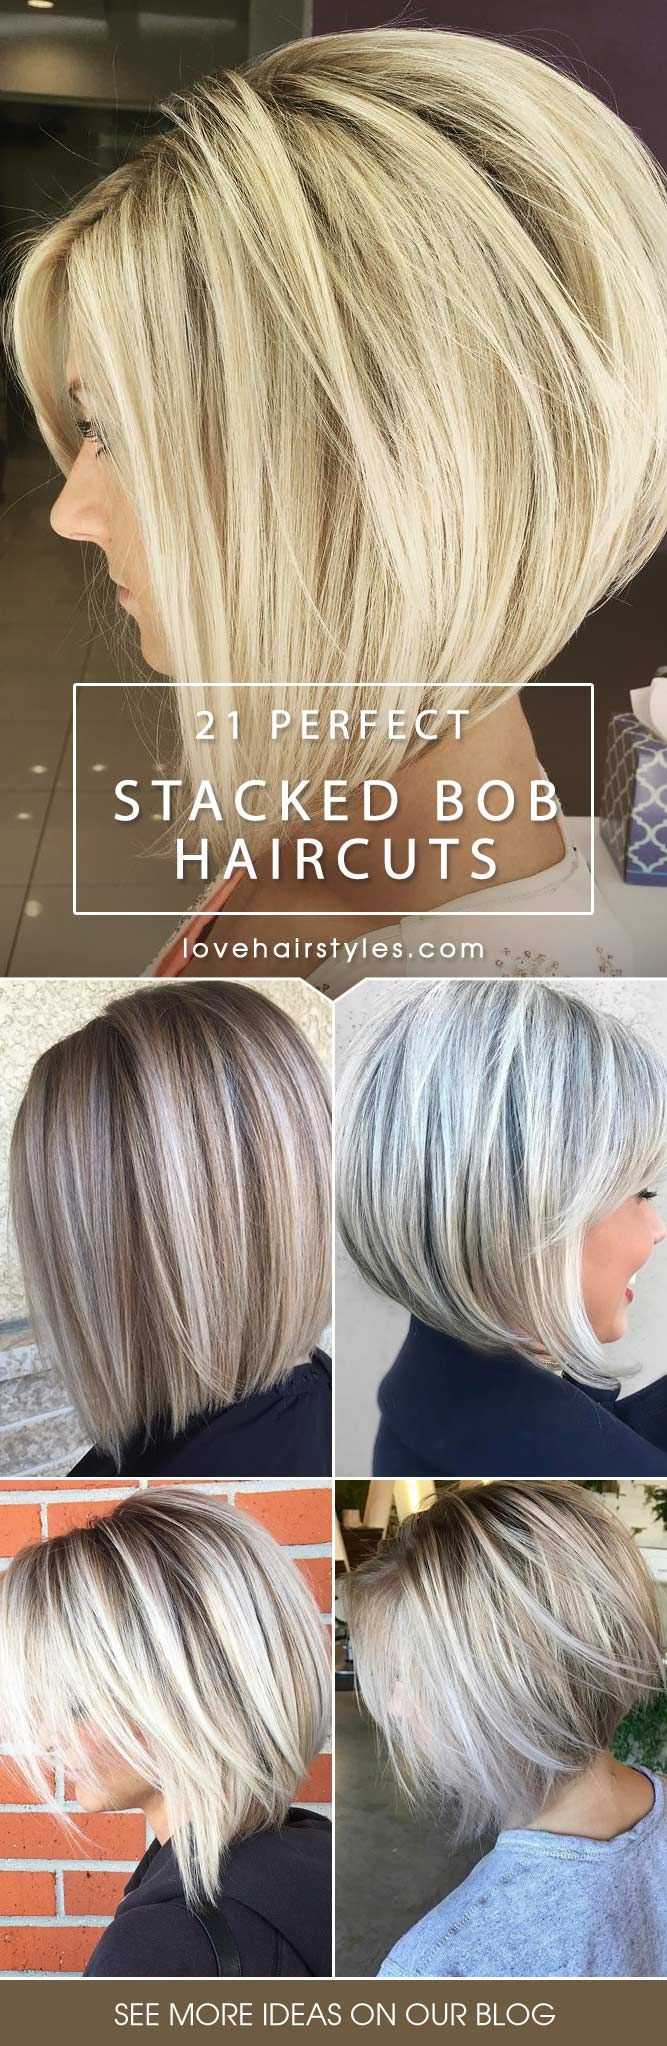 Stacked Bob Hairstyle 2classic stacked bob with highlights 40 Fantastic Stacked Bob Haircut Ideas